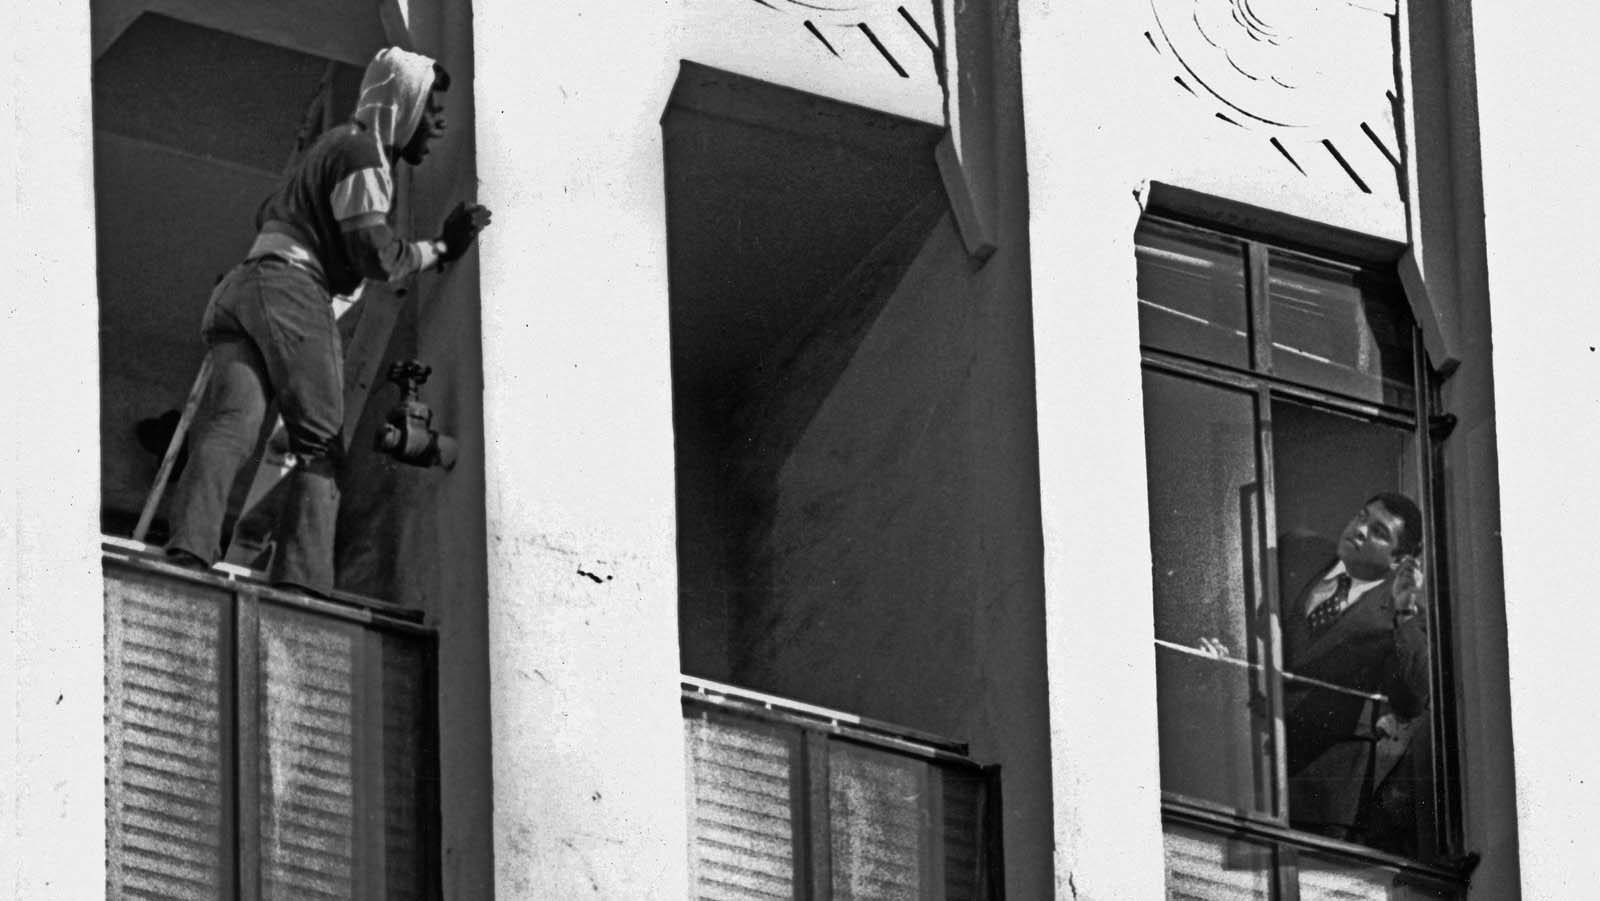 This is the dramatic moment Muhammad Ali saved a suicidal man who was threatening to jump out of a ninth-floor building in Los Angeles in 1981. Ali (right) is seen leaning out of a window pleading with the man.